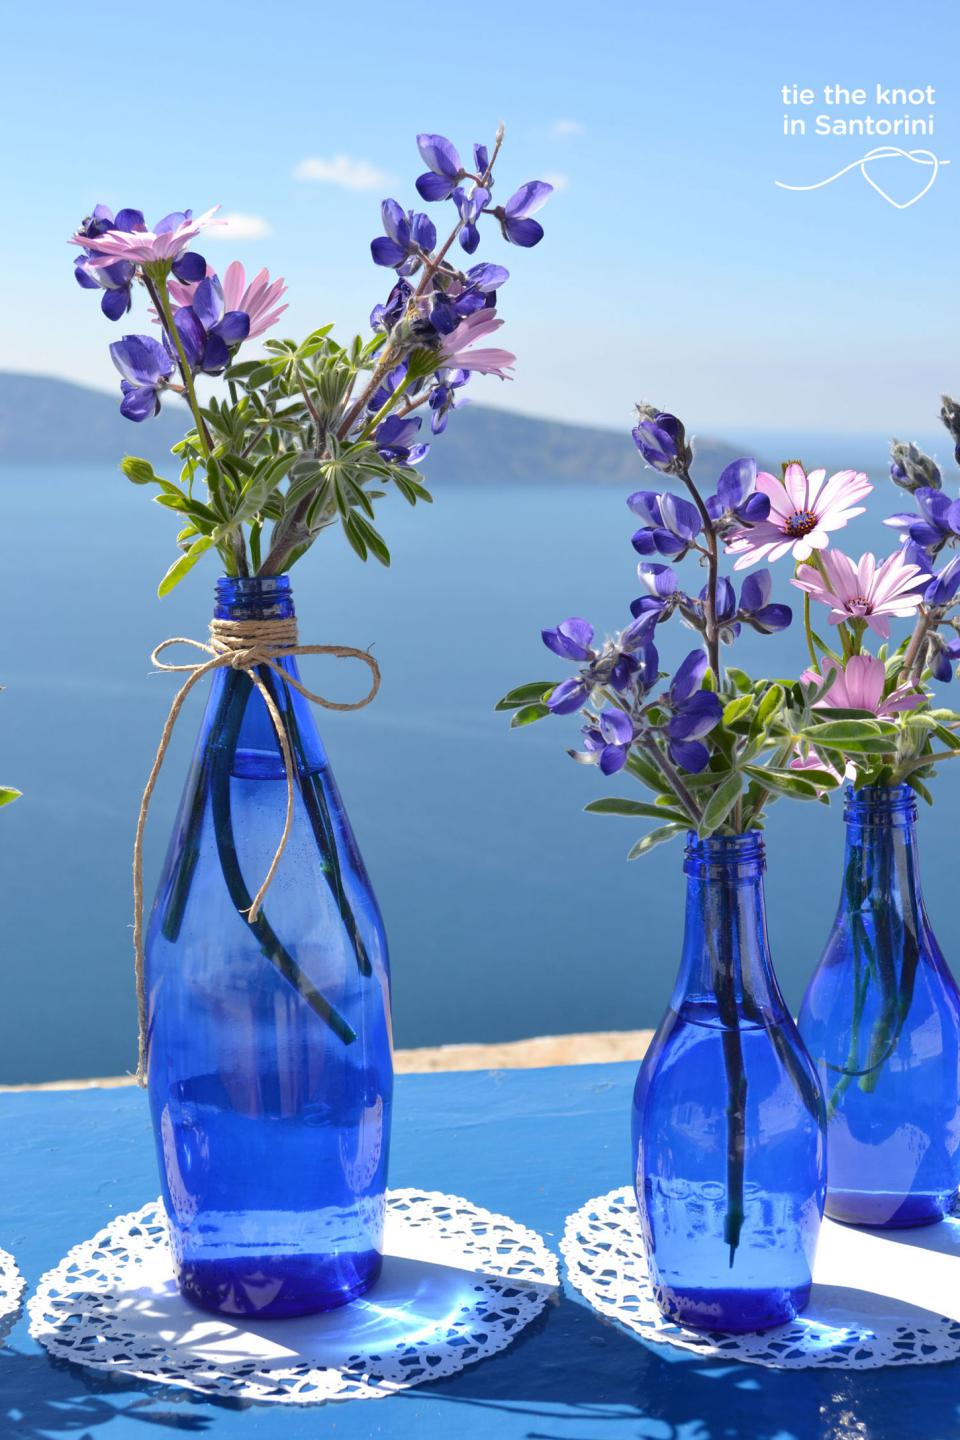 Diy santorini wedding decor in blue purple tie the knot in diy santorini wedding izmirmasajfo